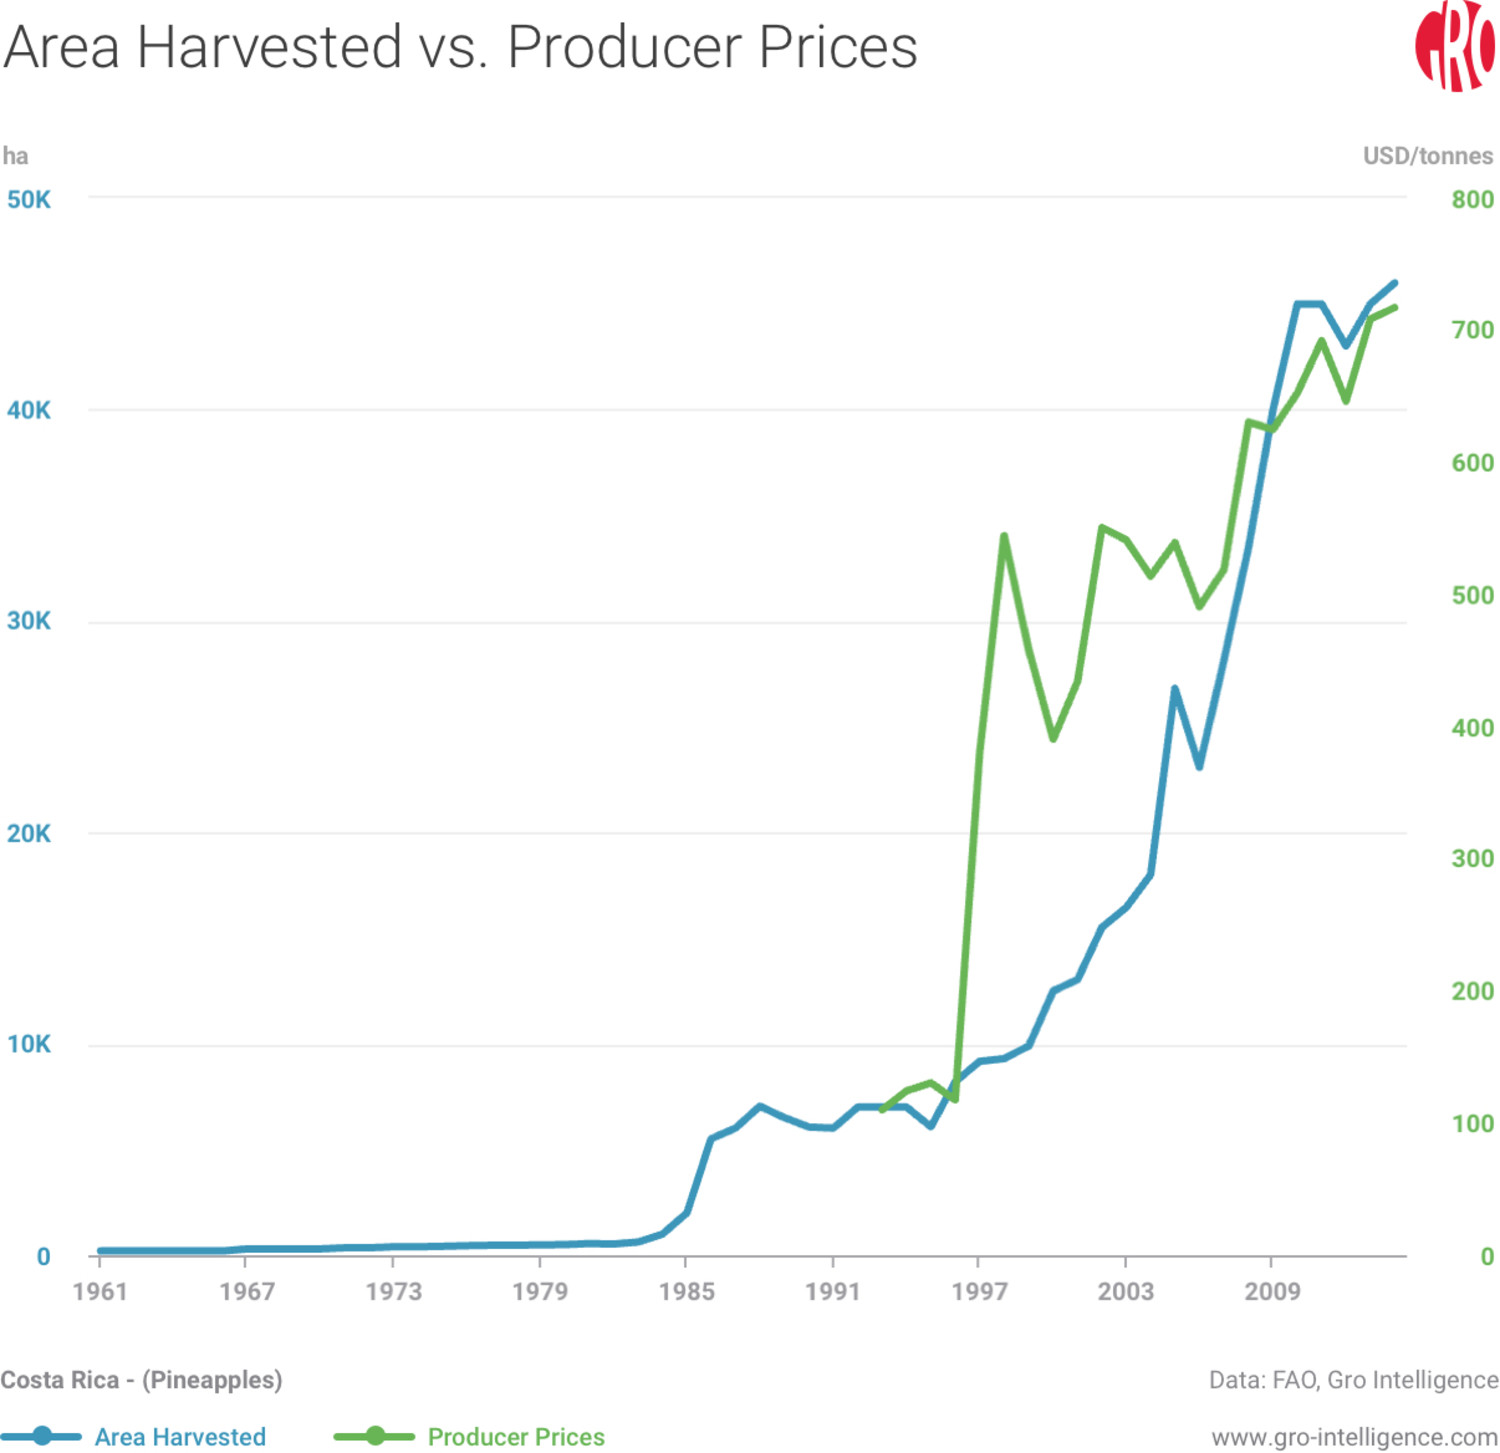 Area Harvested vs Producer Prices